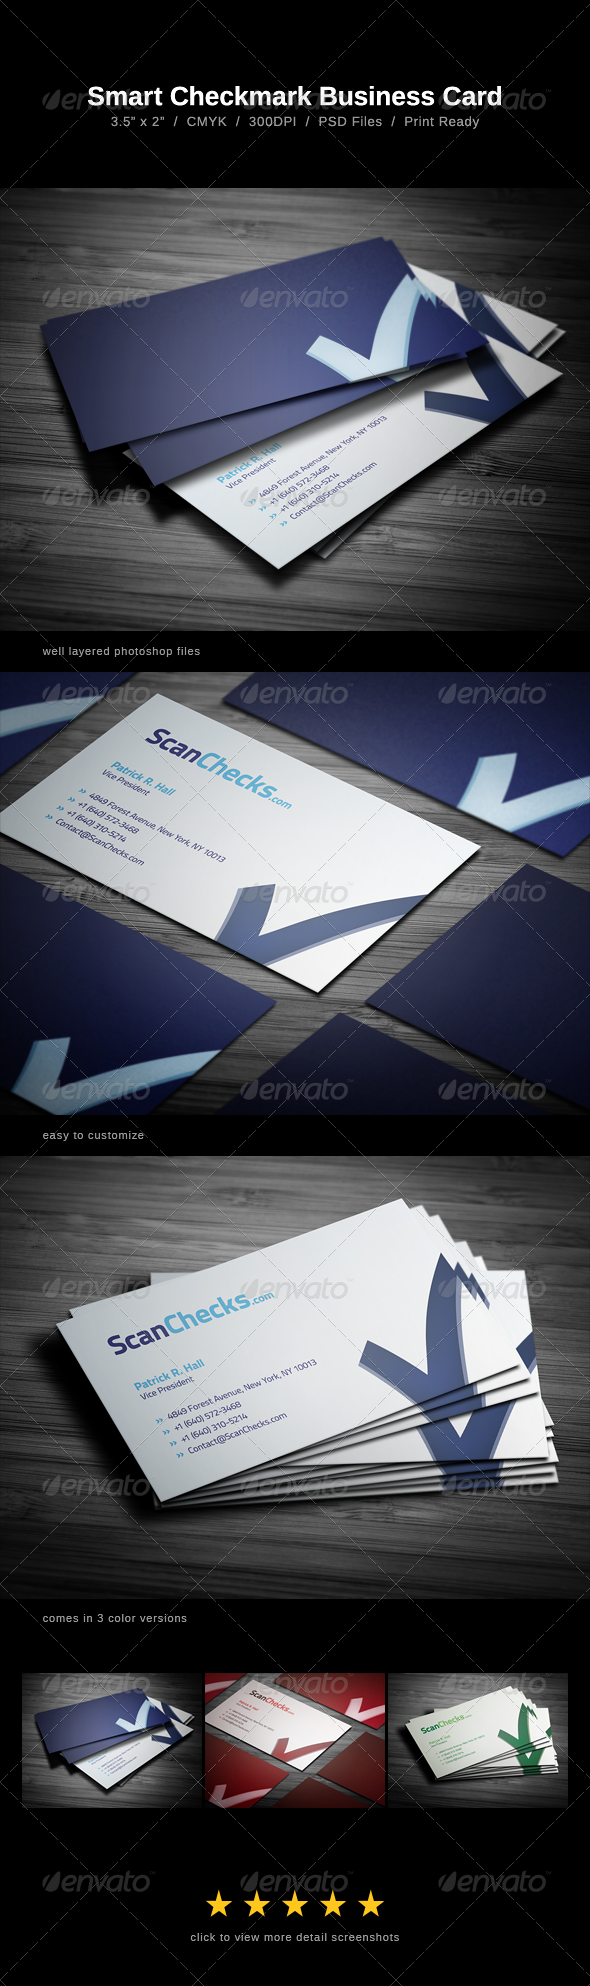 Smart Checkmark Business Card - Corporate Business Cards